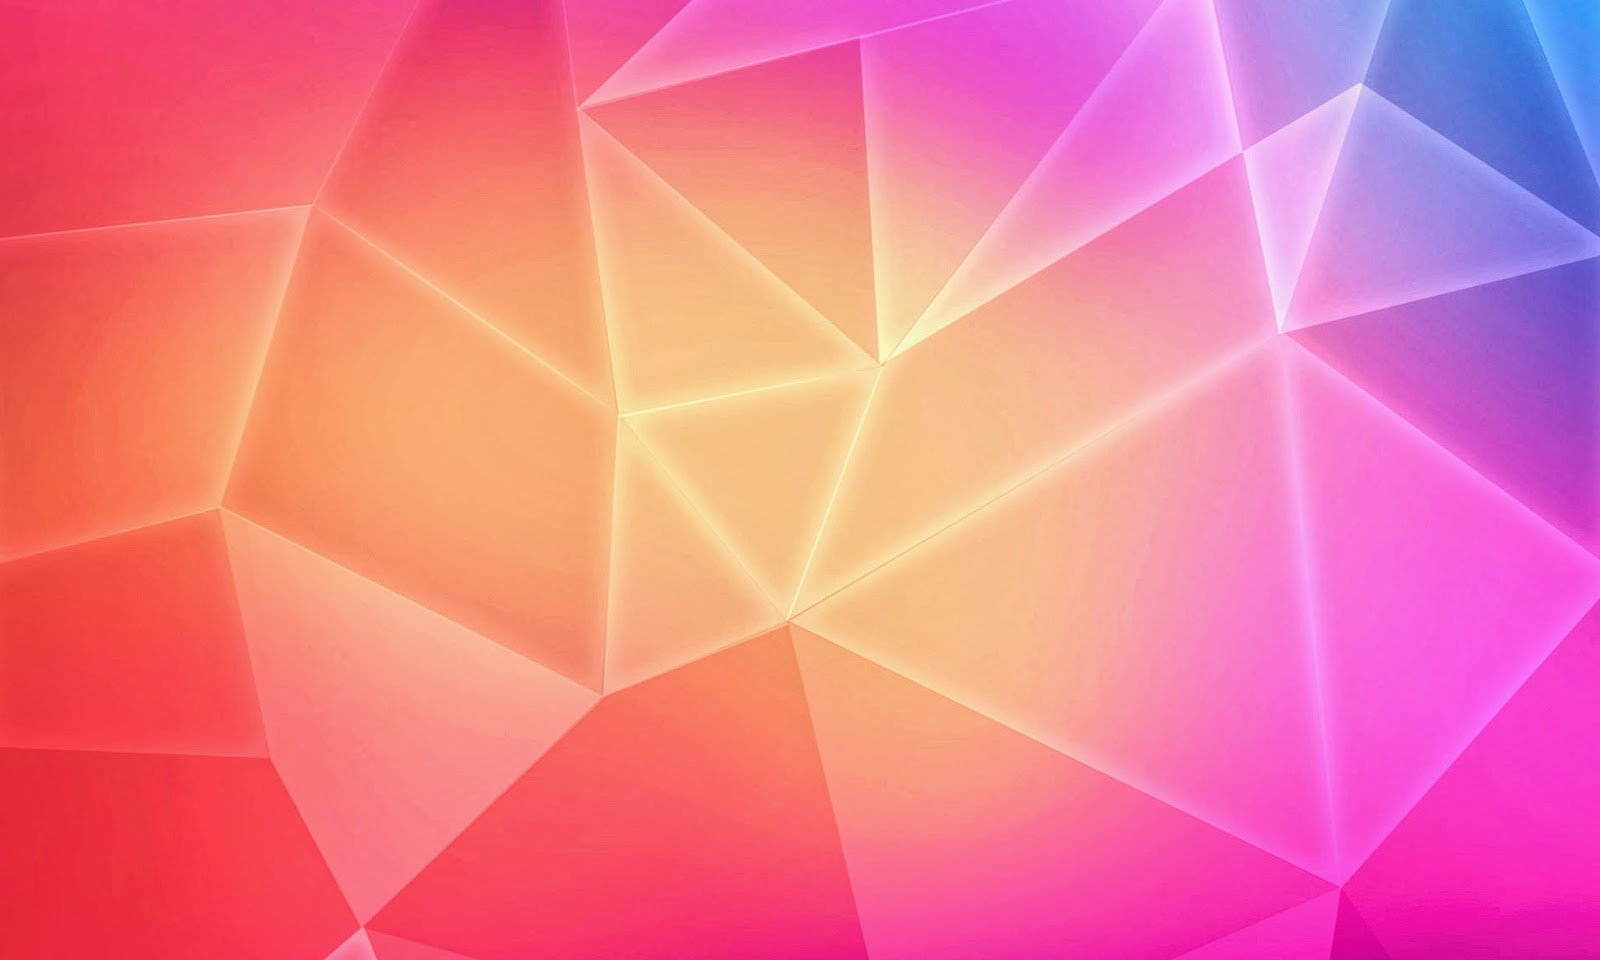 triangle abstract wallpapers hd - photo #15